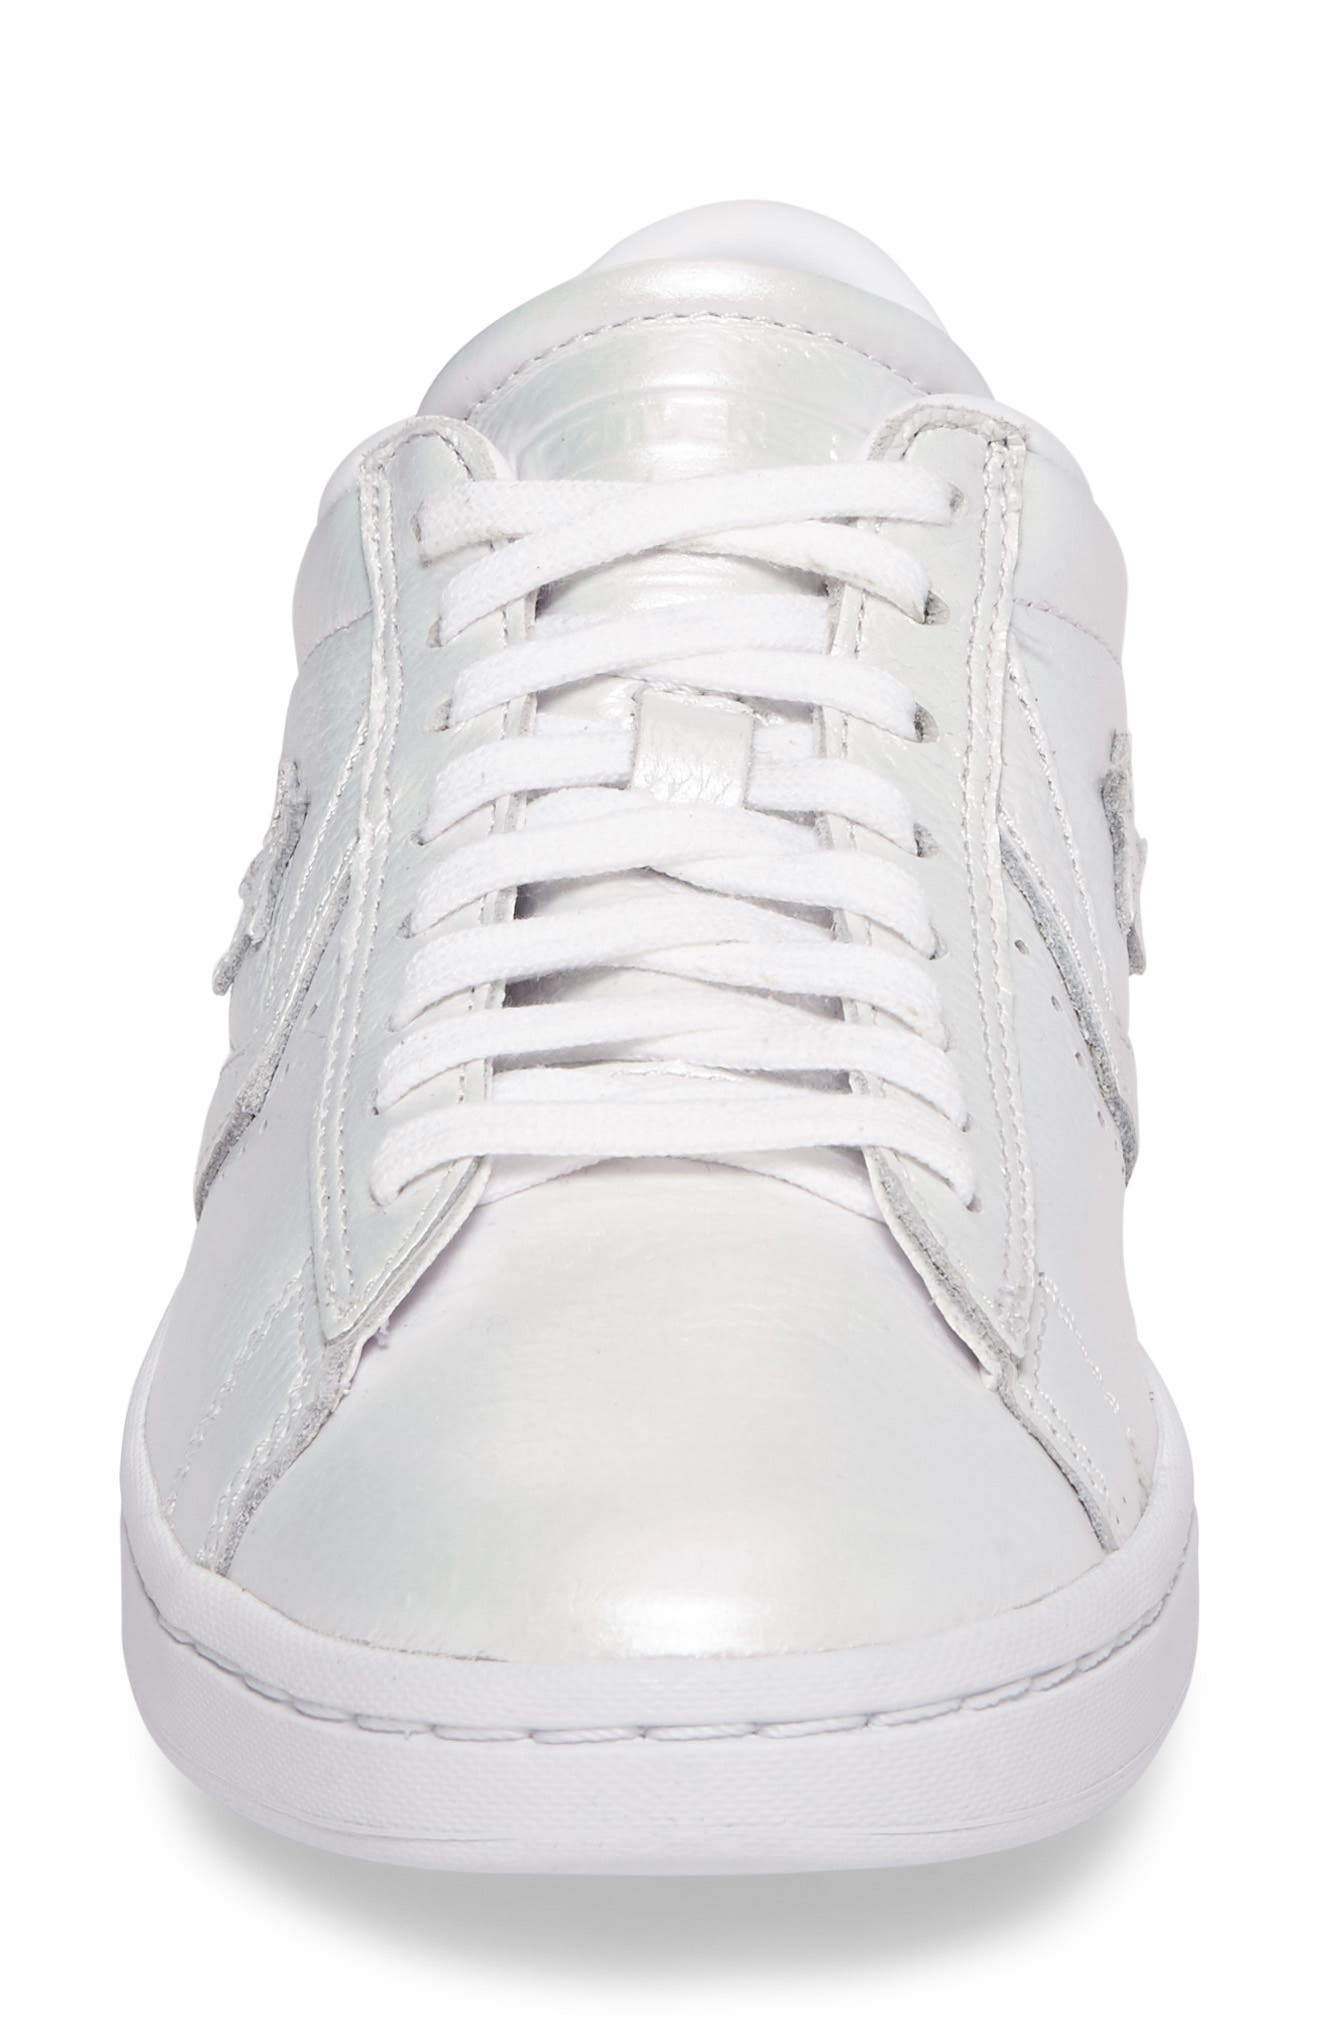 Pro Leather LP Sneaker,                             Alternate thumbnail 4, color,                             White Leather